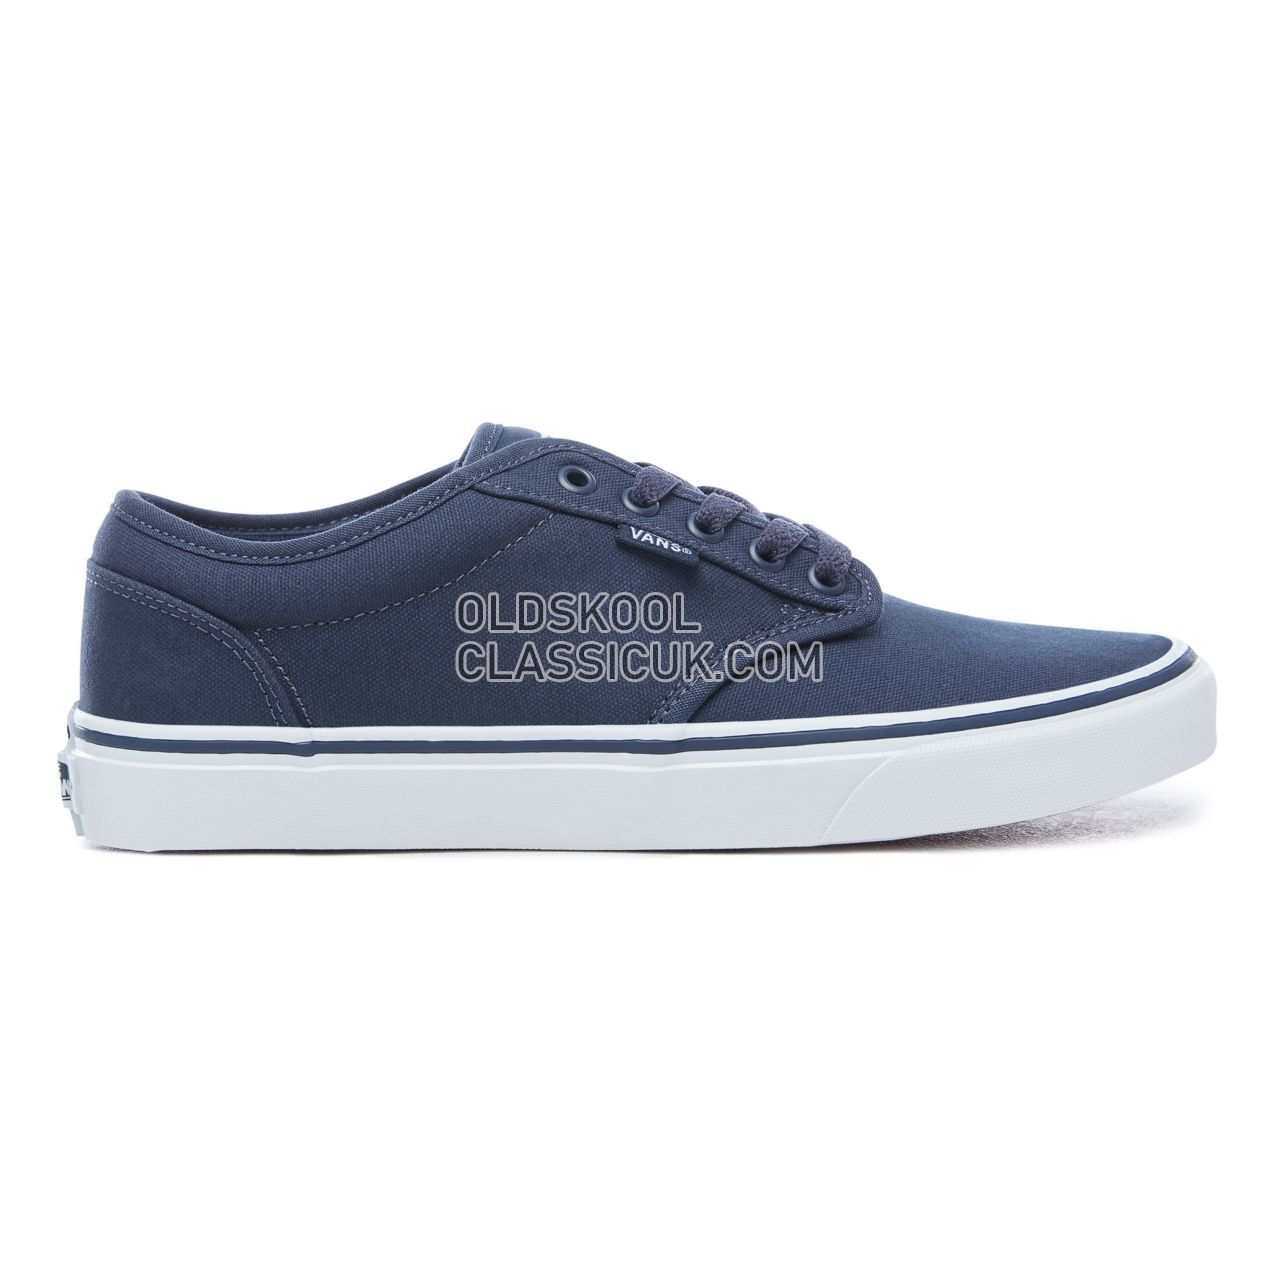 Vans Atwood Sneakers Mens Navy/White VN000KC44K1 Shoes